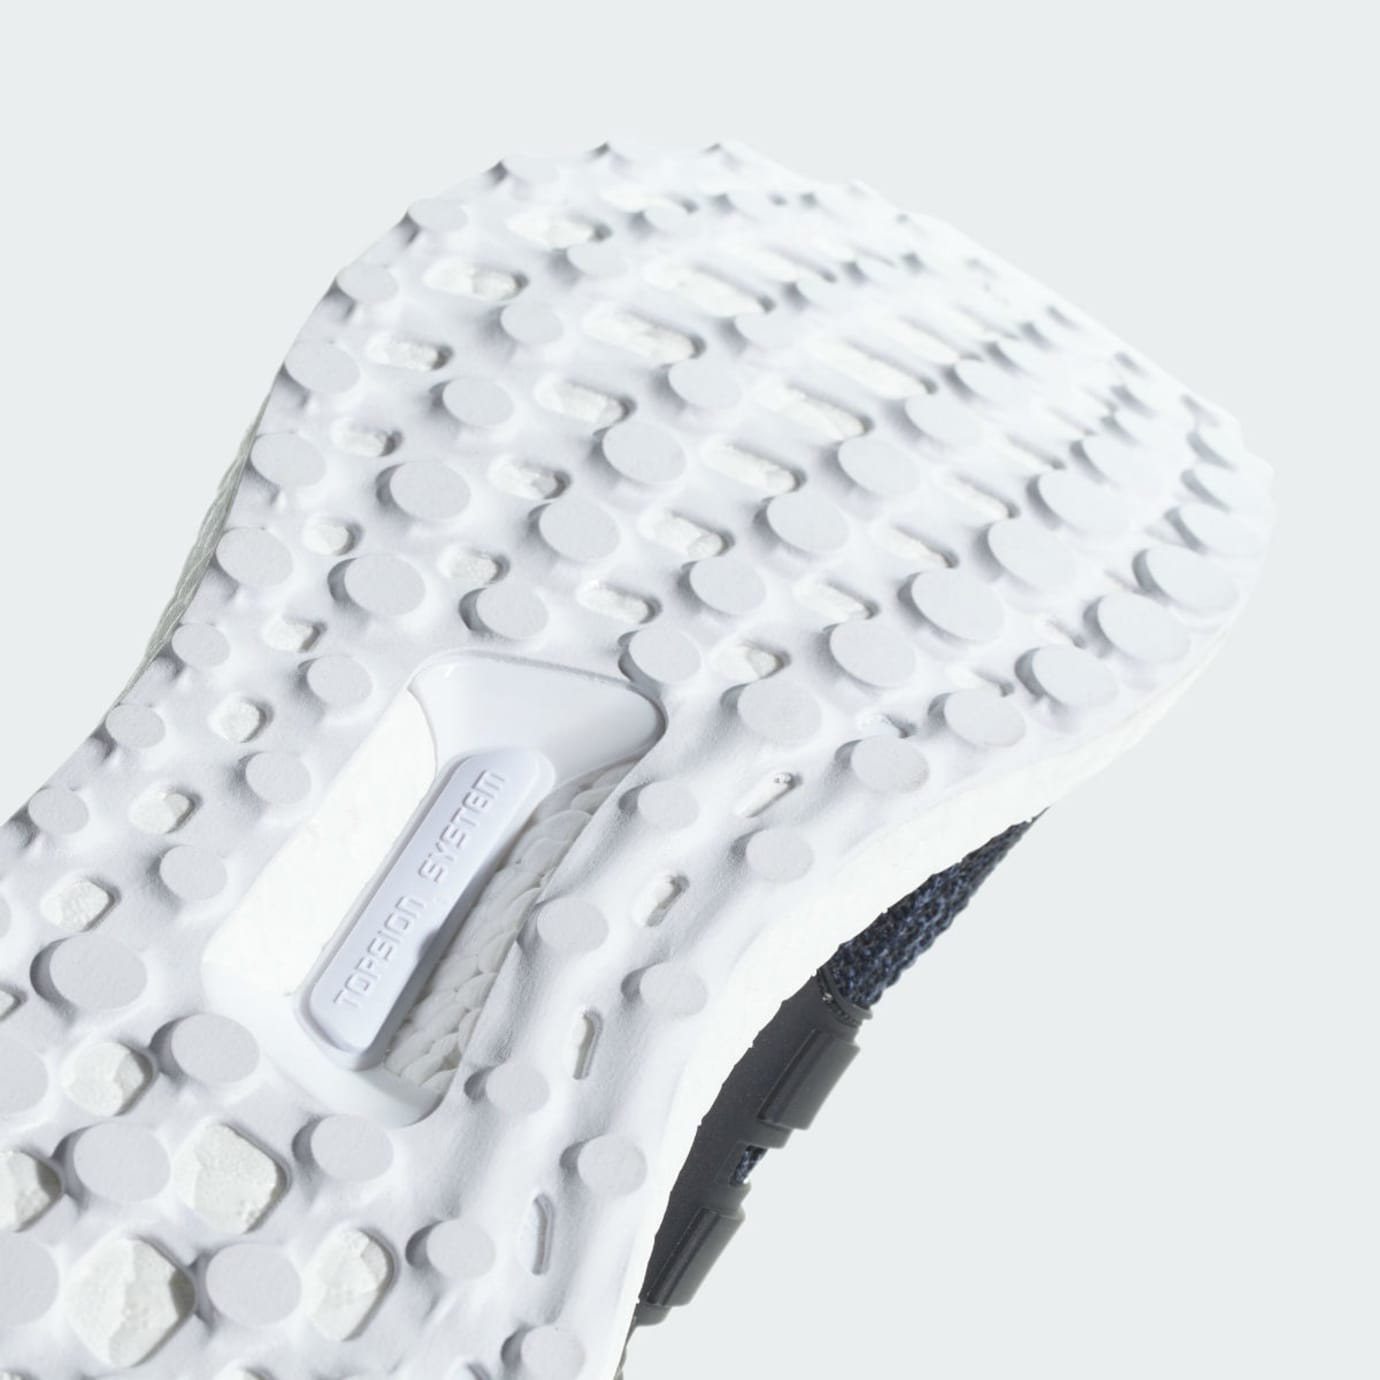 Parley x Adidas Ultra Boost Legend Ink Carbon Core Black Release Date AC7836 Outsole